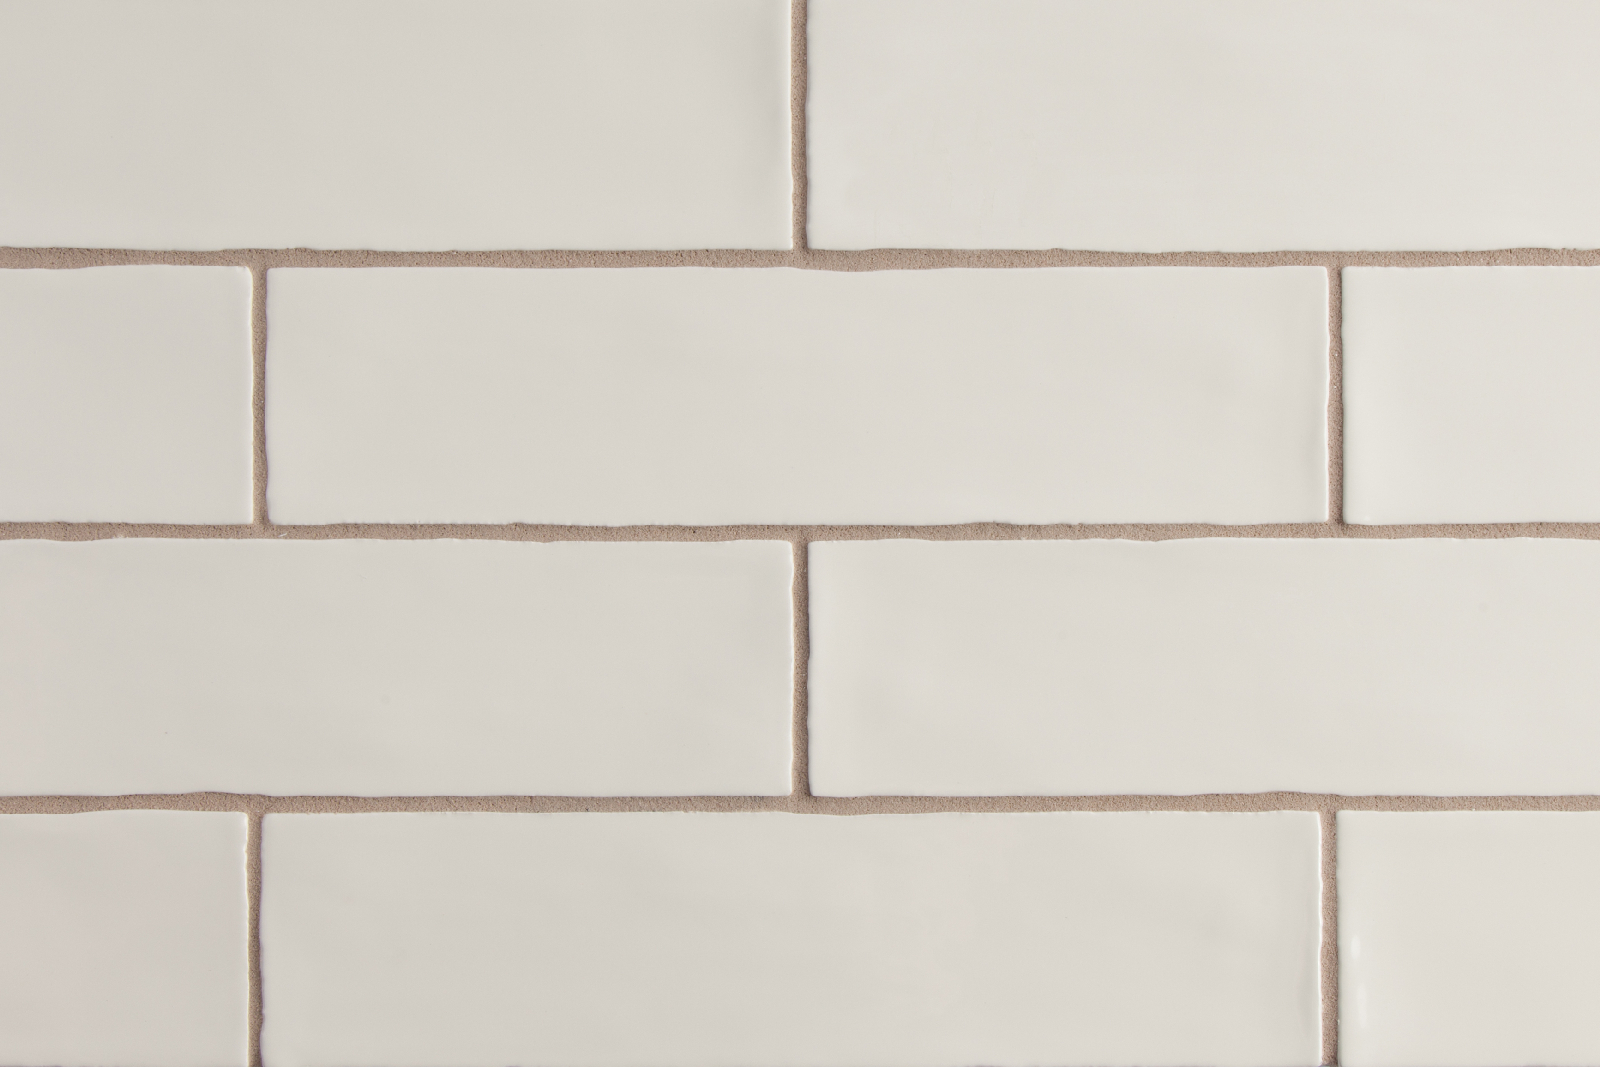 Subway Tiles South Cypress - 4x6 wall tile